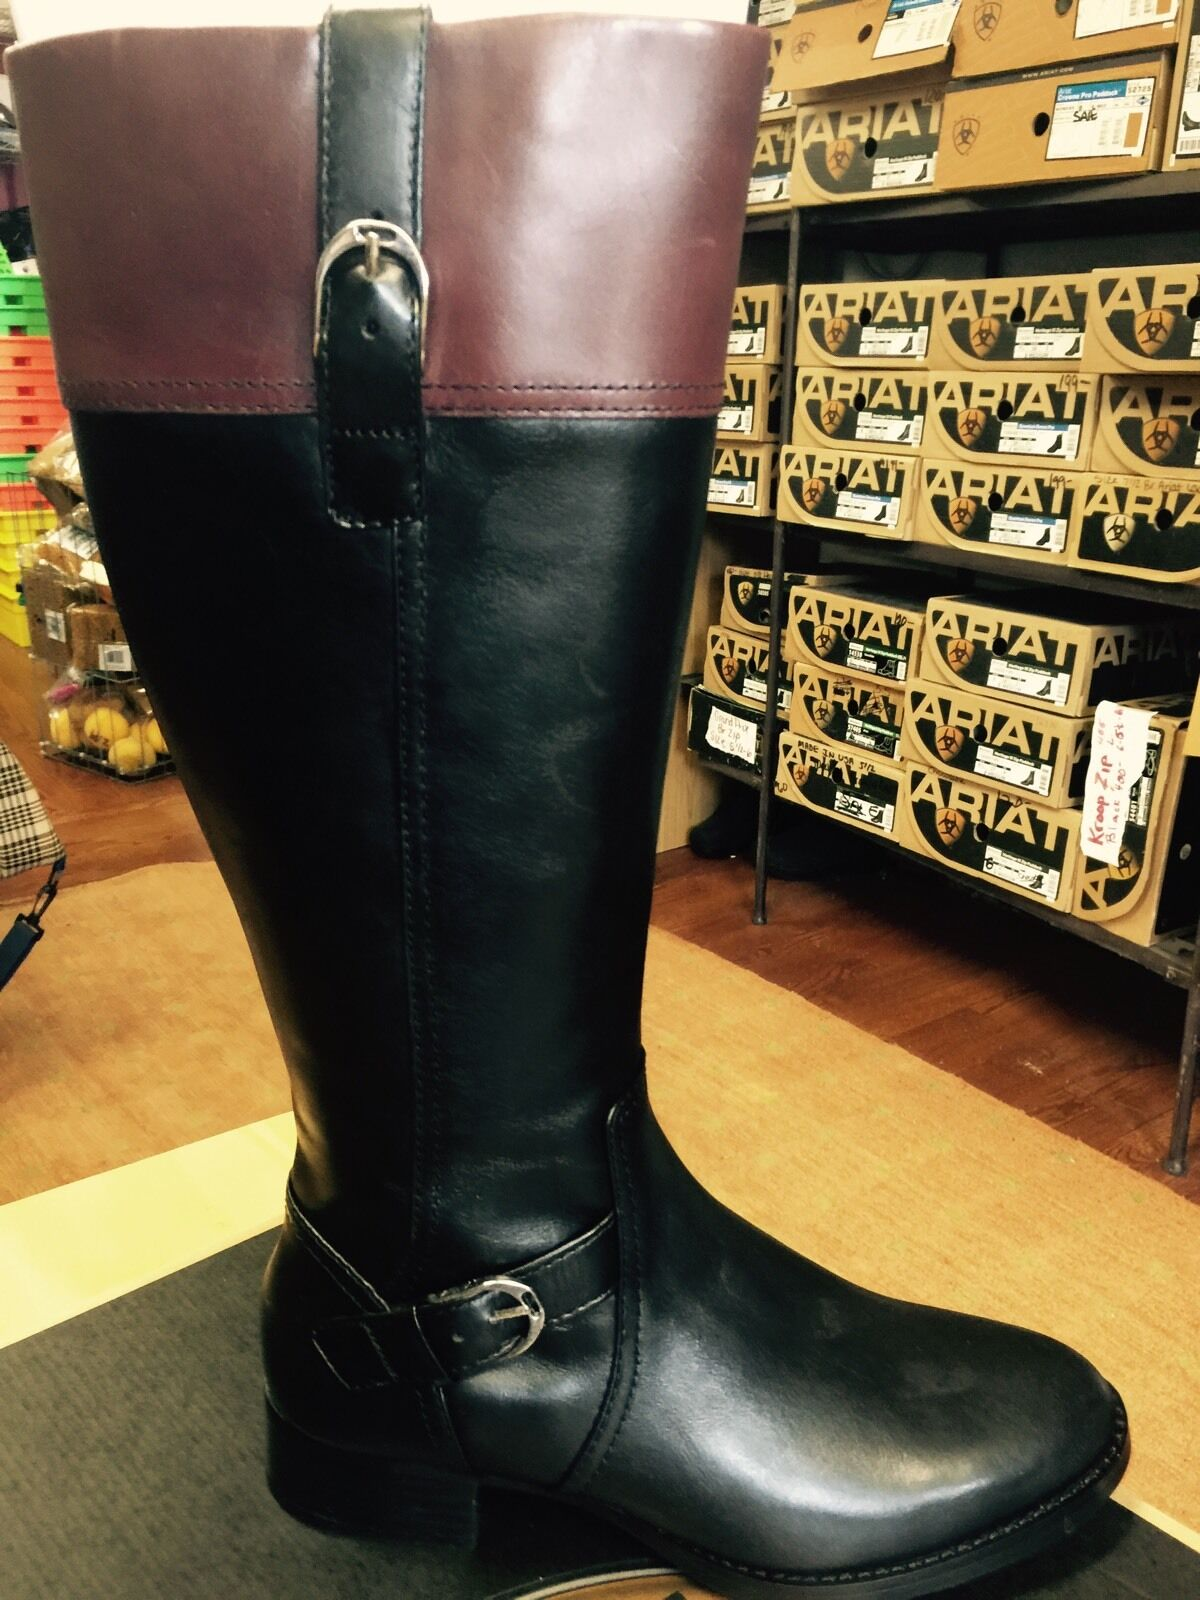 New Ariat Tall Leather Equestrian Style Boot Boot Boot Size 8 Regular Calf Width e2bc1a